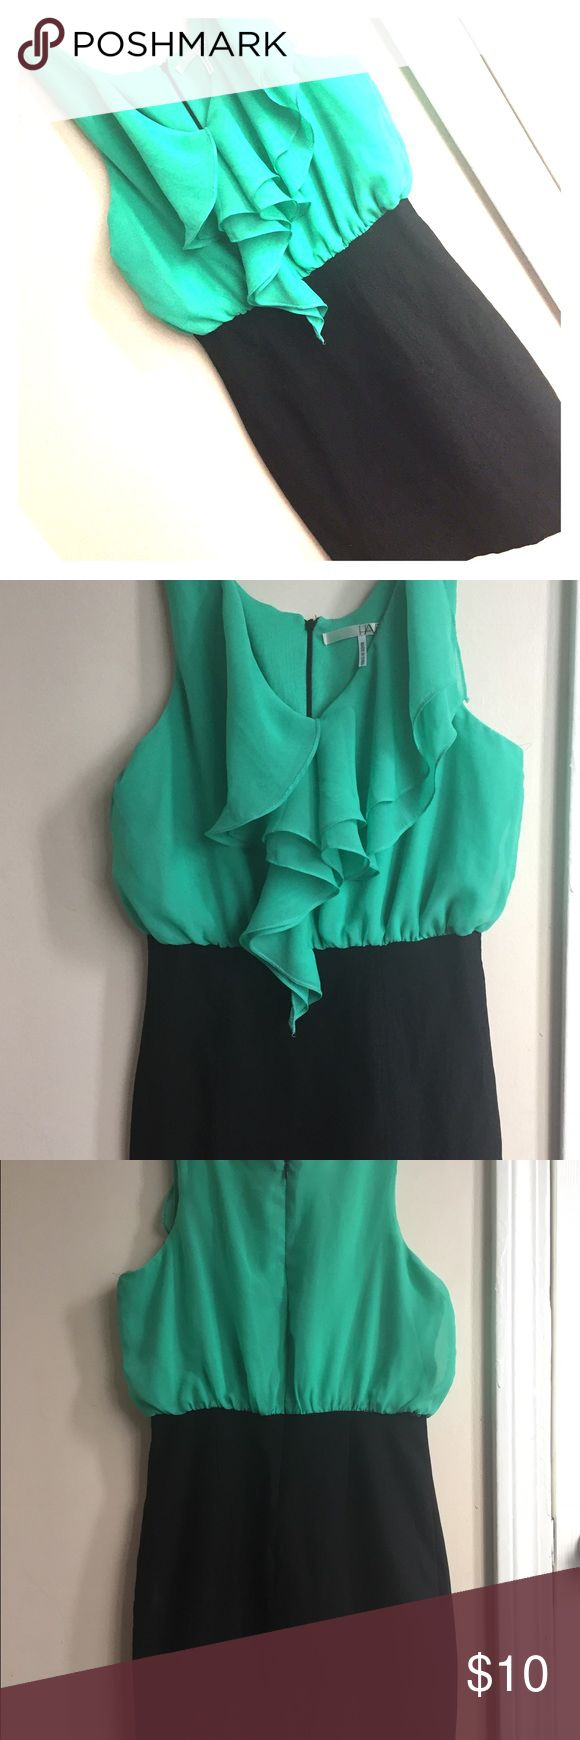 Flattering Teal and Black Ruffle Top Dress 👗 Teal ruffled blouse on top to accentuate the girls 👀 and thick, tight black skirt to slim your waist! Dresses